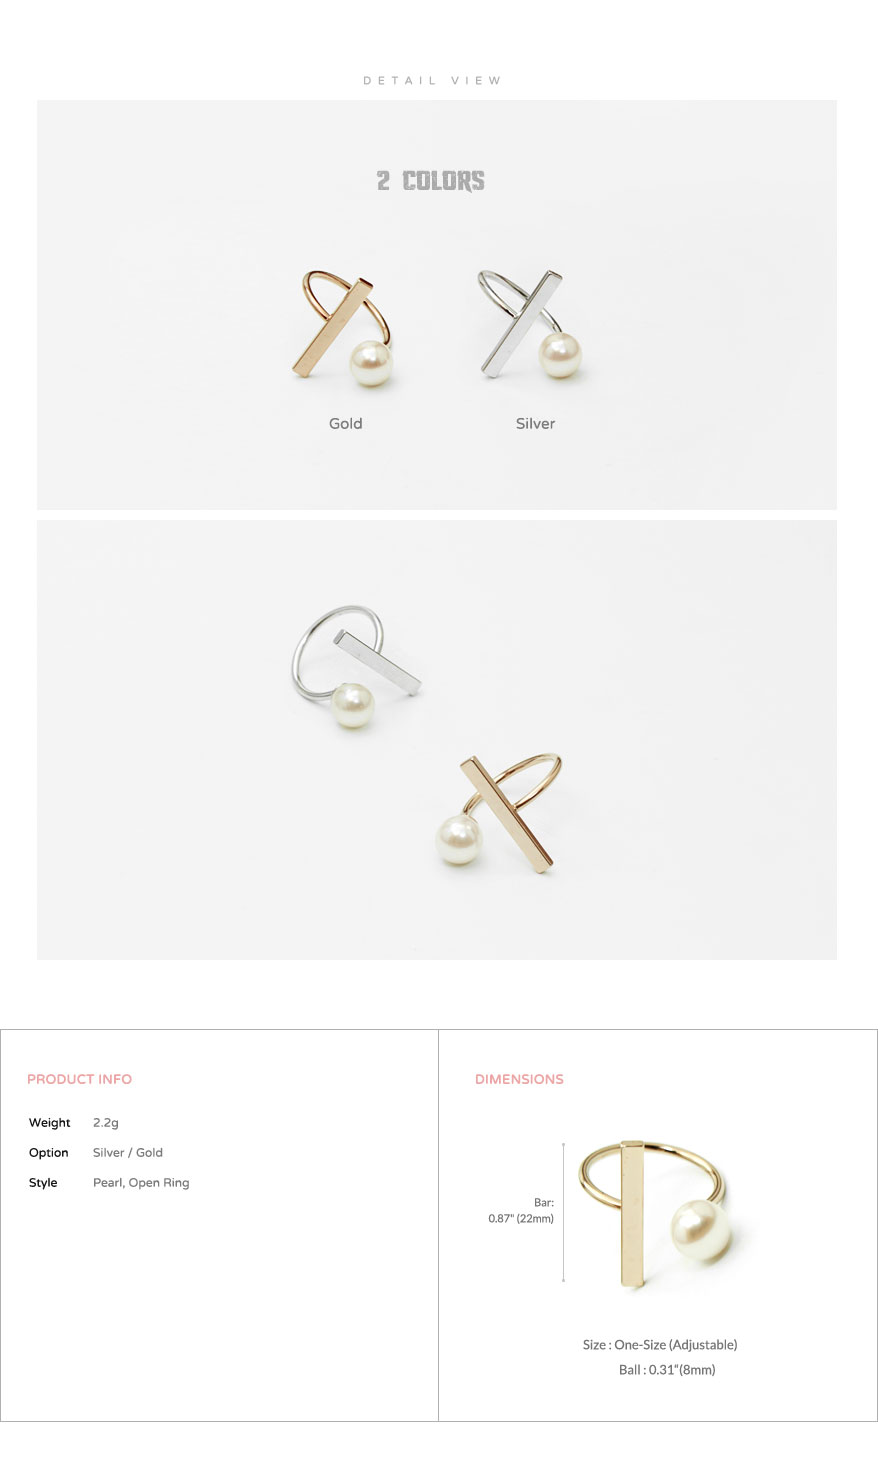 accessories_korean_asian_style_jewelry_open_ring_trendy_pearl_5